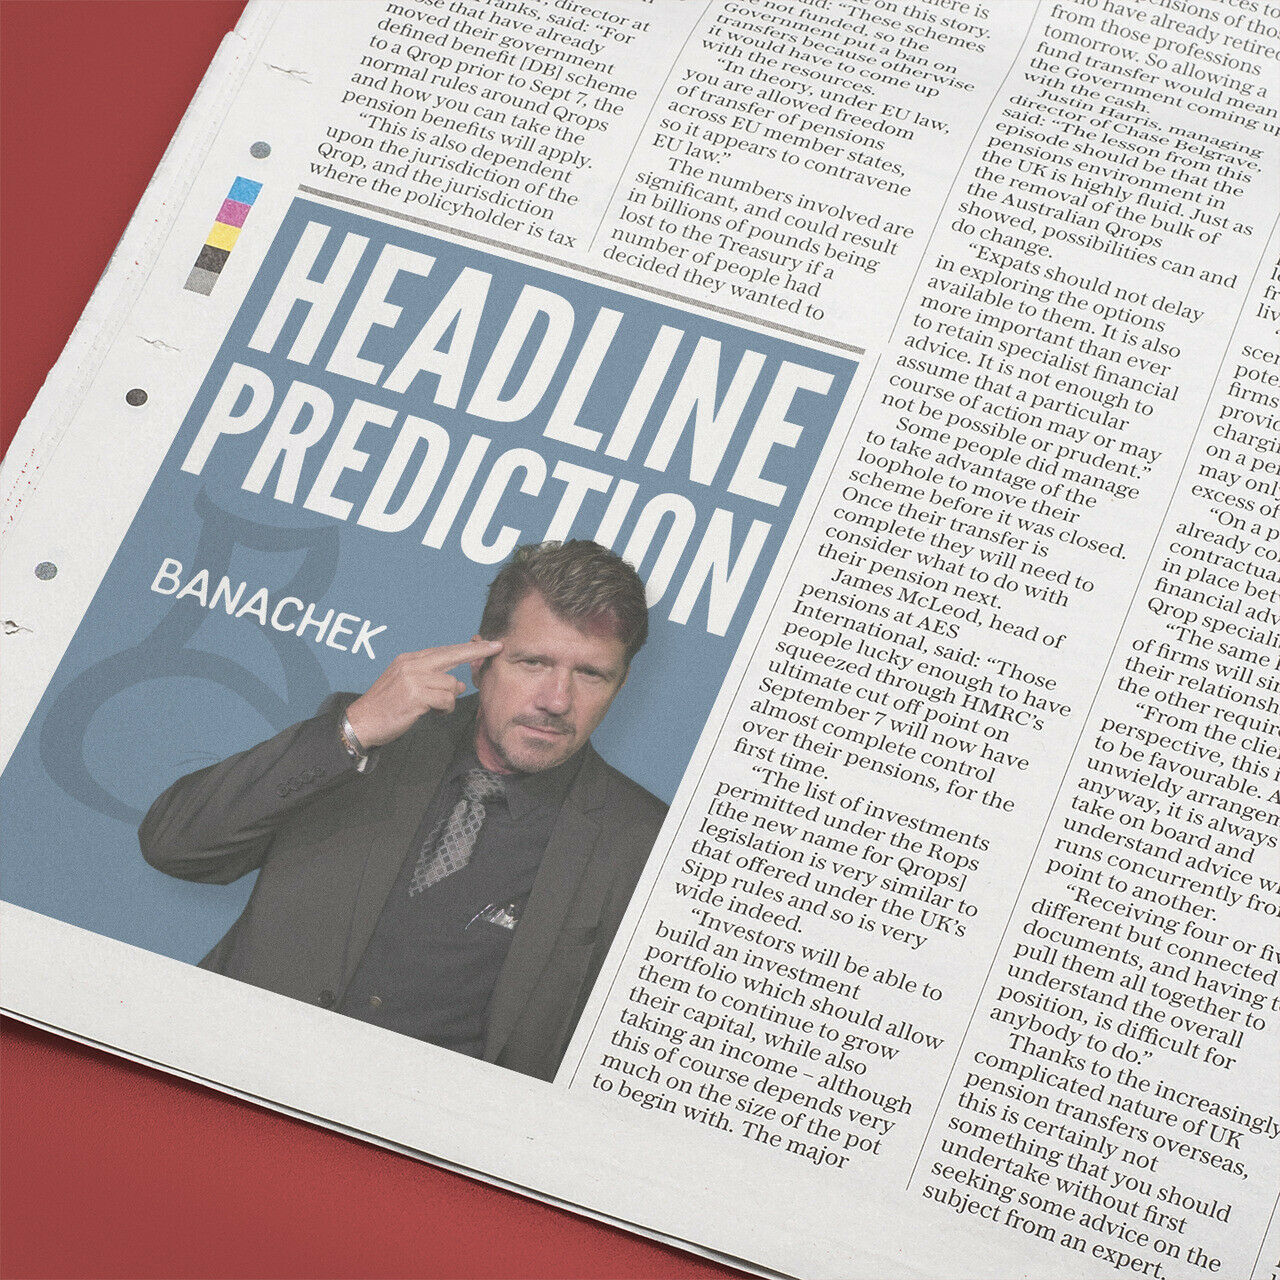 bonus Headline Prediction by Banachek mentalism magic